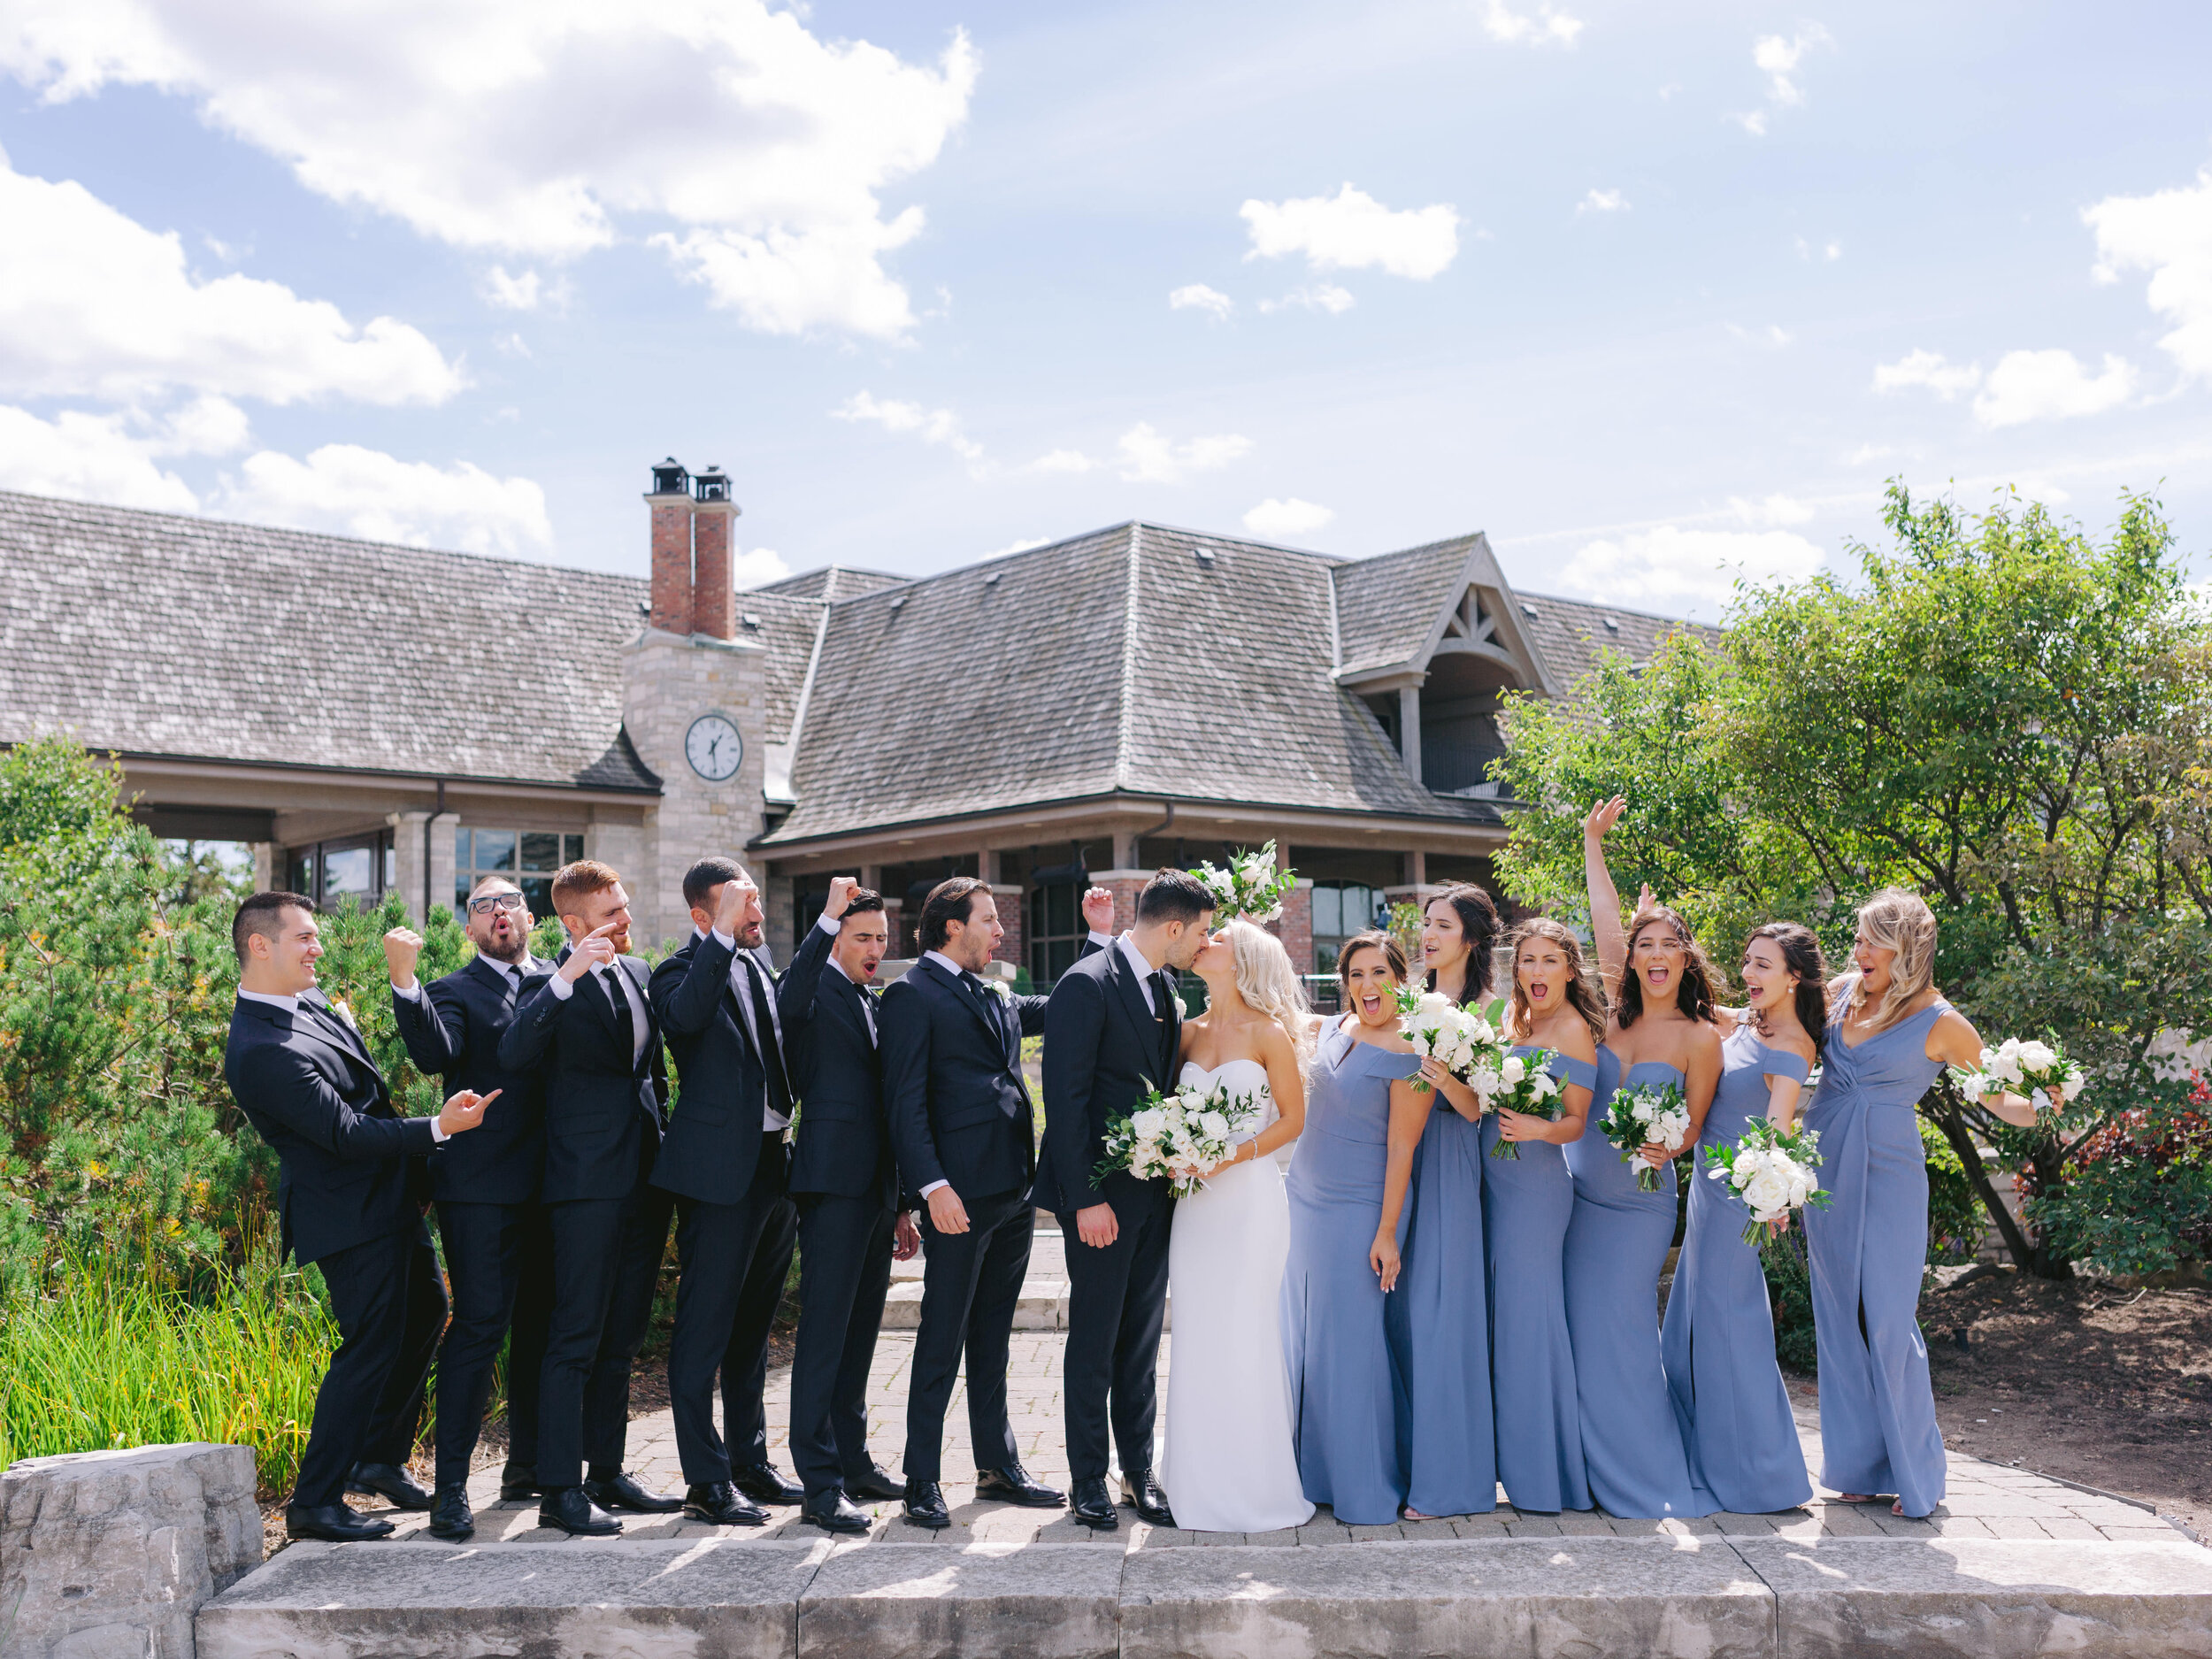 First Look_Bridal Party Portraits (98 of 234).JPG